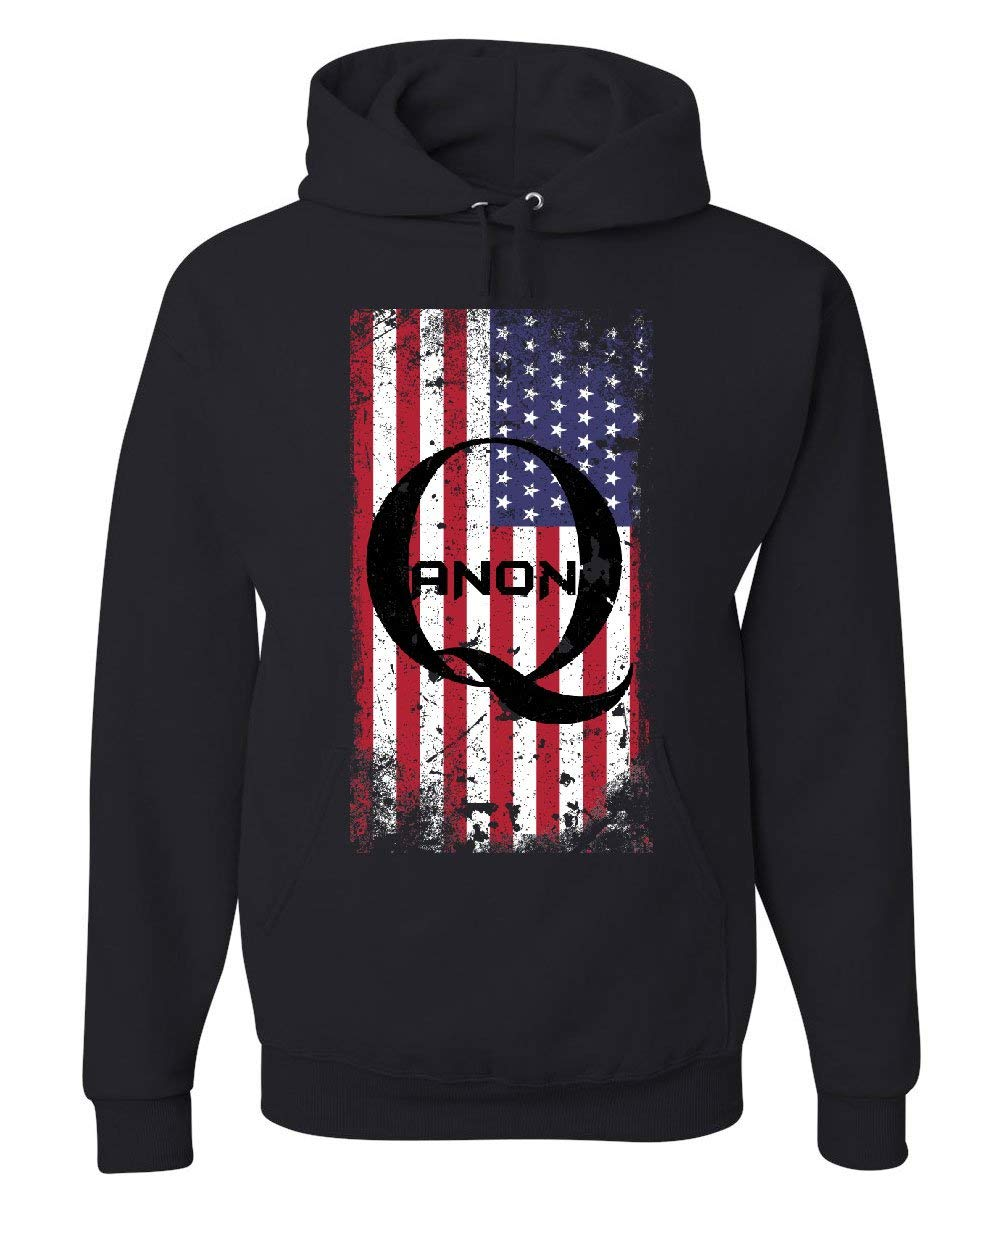 Distressed American QANON Flag Hoodie The Great Awakening...